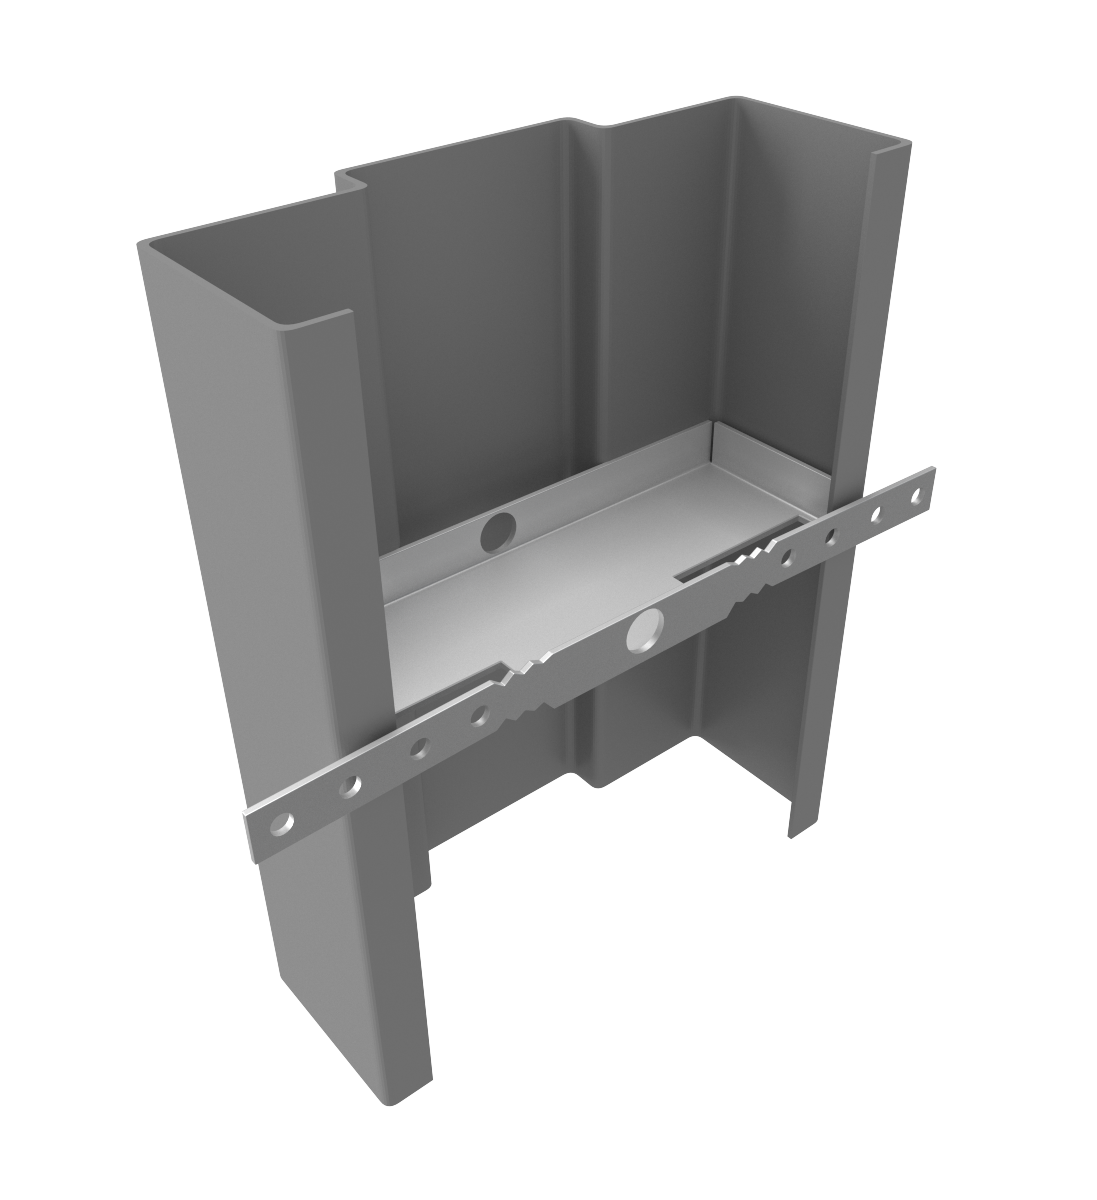 Most Hollow Metal Frames Are Sold With Custom Factory Modifications That Include Custom Hardware Prep Additional Reinforcements And Several Different Wall